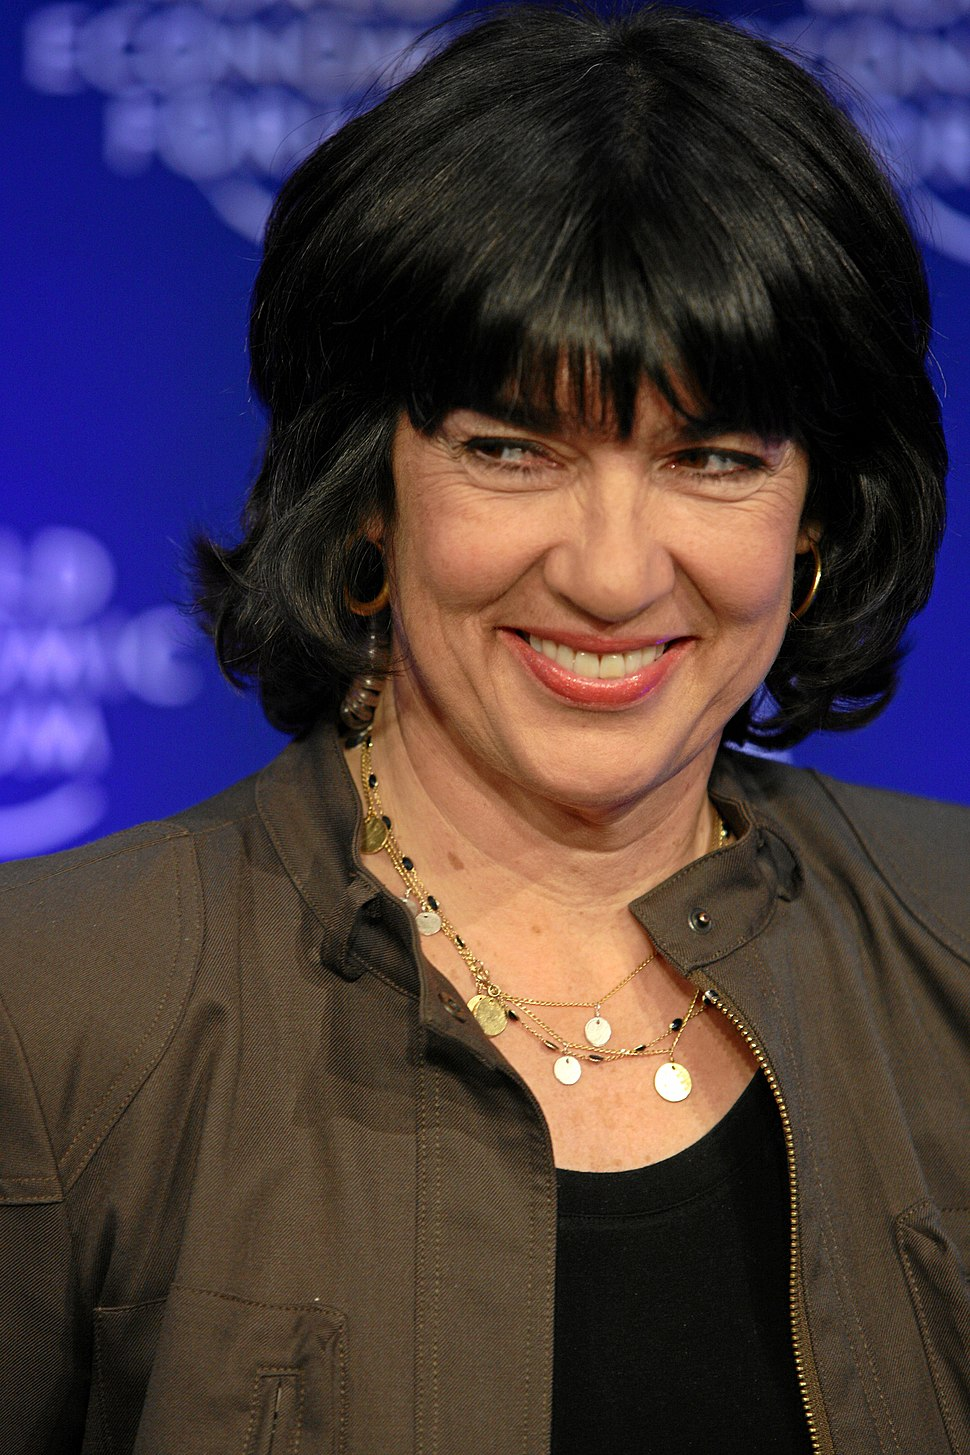 Christiane amanpour world economic forum 2009